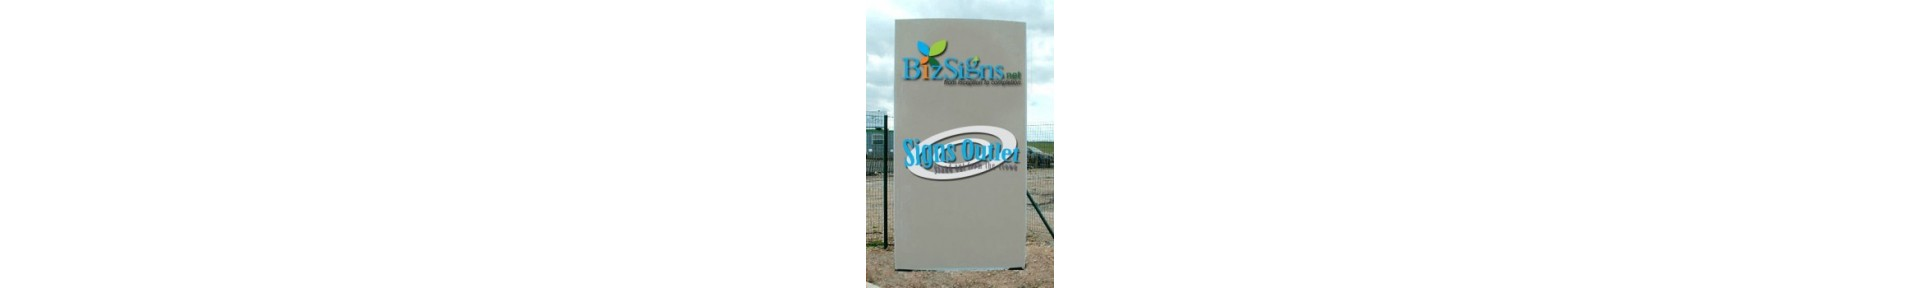 Industrial Pylon Signs in Canada | SignsOutlet